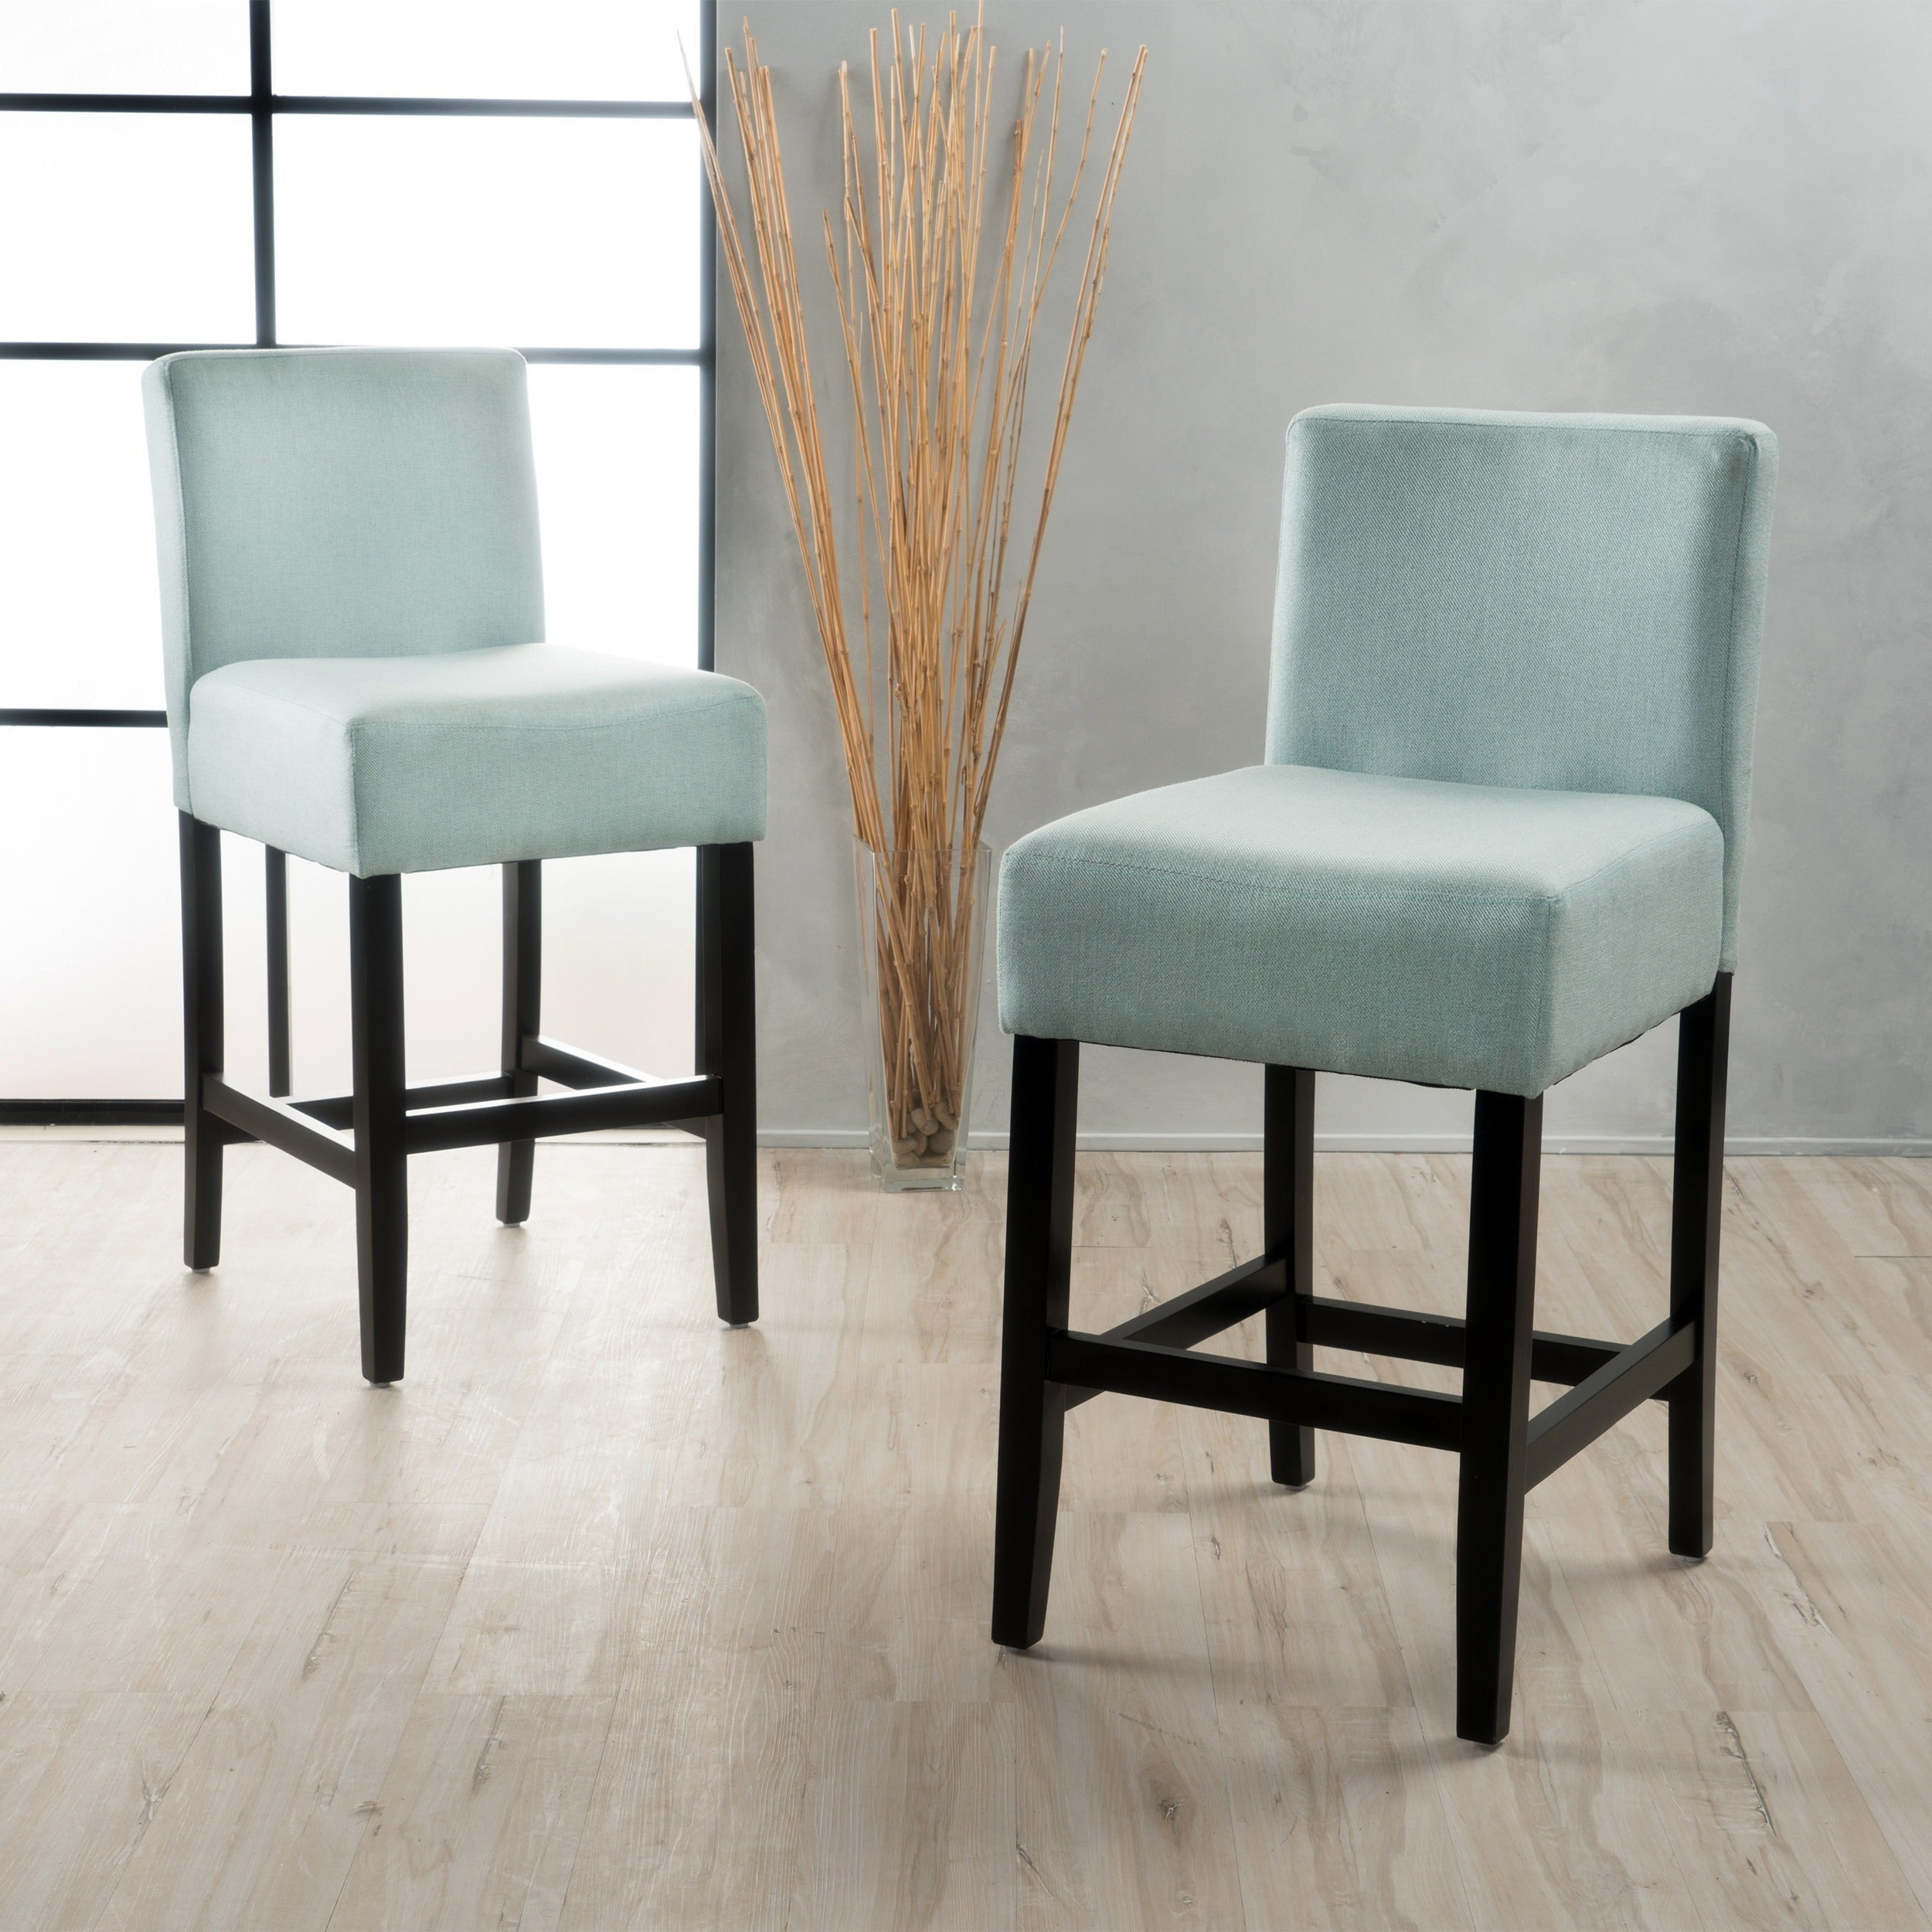 Enjoyable Lopez 26 Inch Fabric Counter Stool Set Of 2 By Christopher Knight Home 26 Gmtry Best Dining Table And Chair Ideas Images Gmtryco